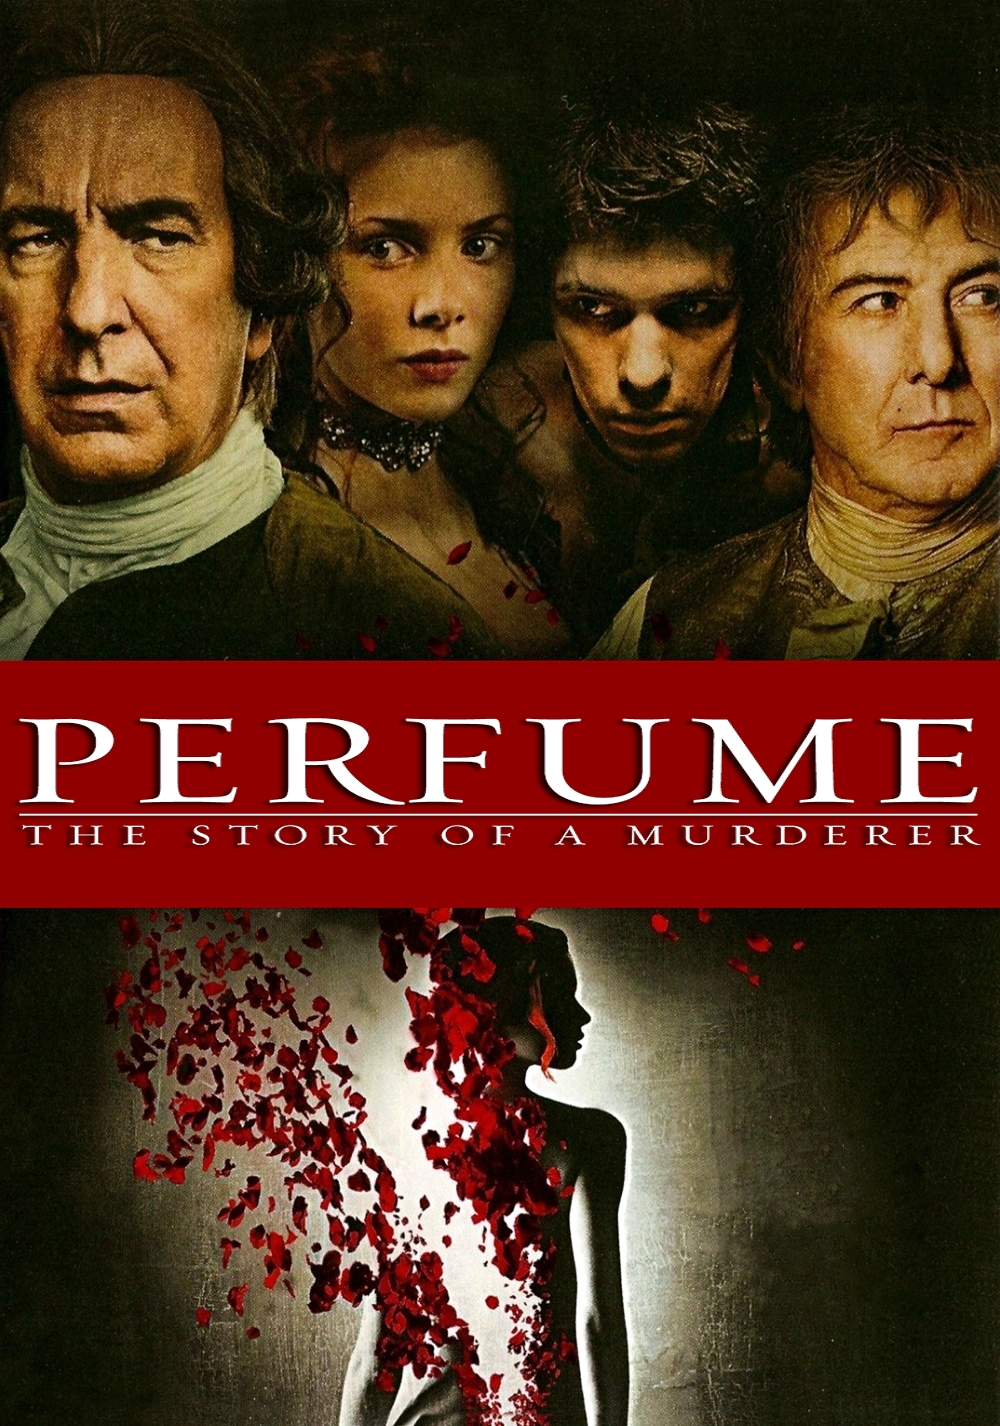 Perfume: The Story of a Murderer 2006 Cut